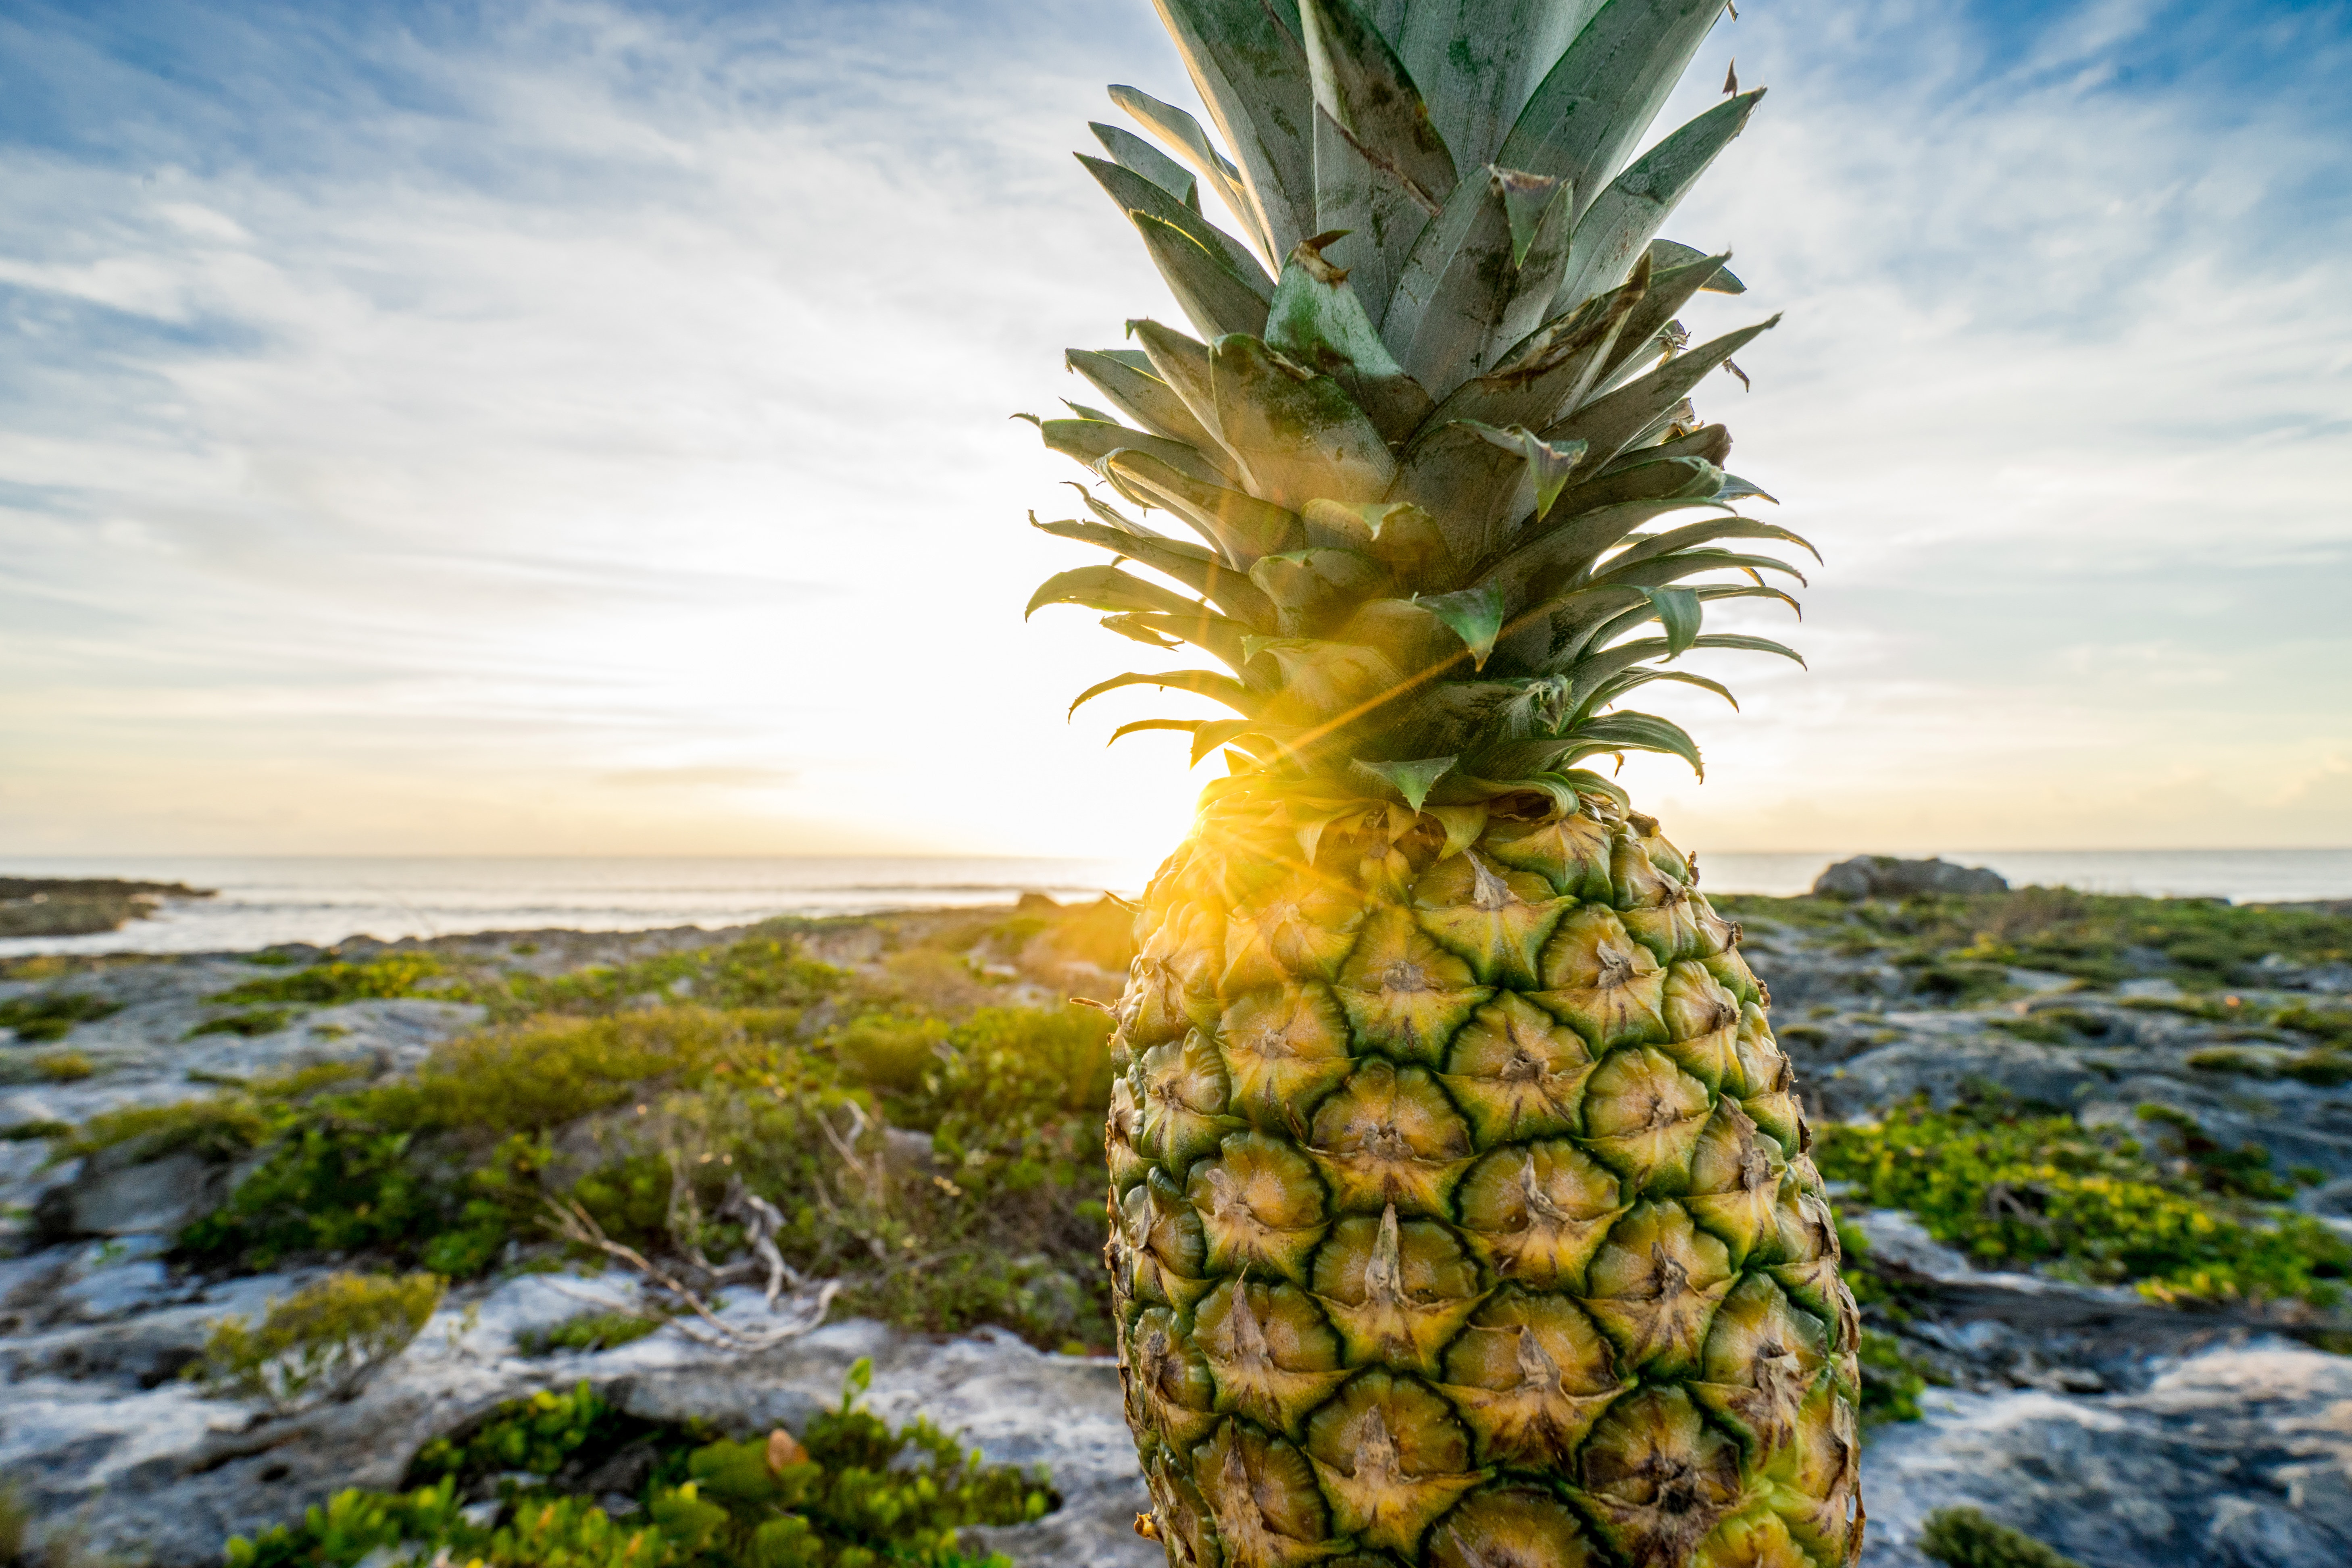 Powerful Pineapples – A True Tropical Treat